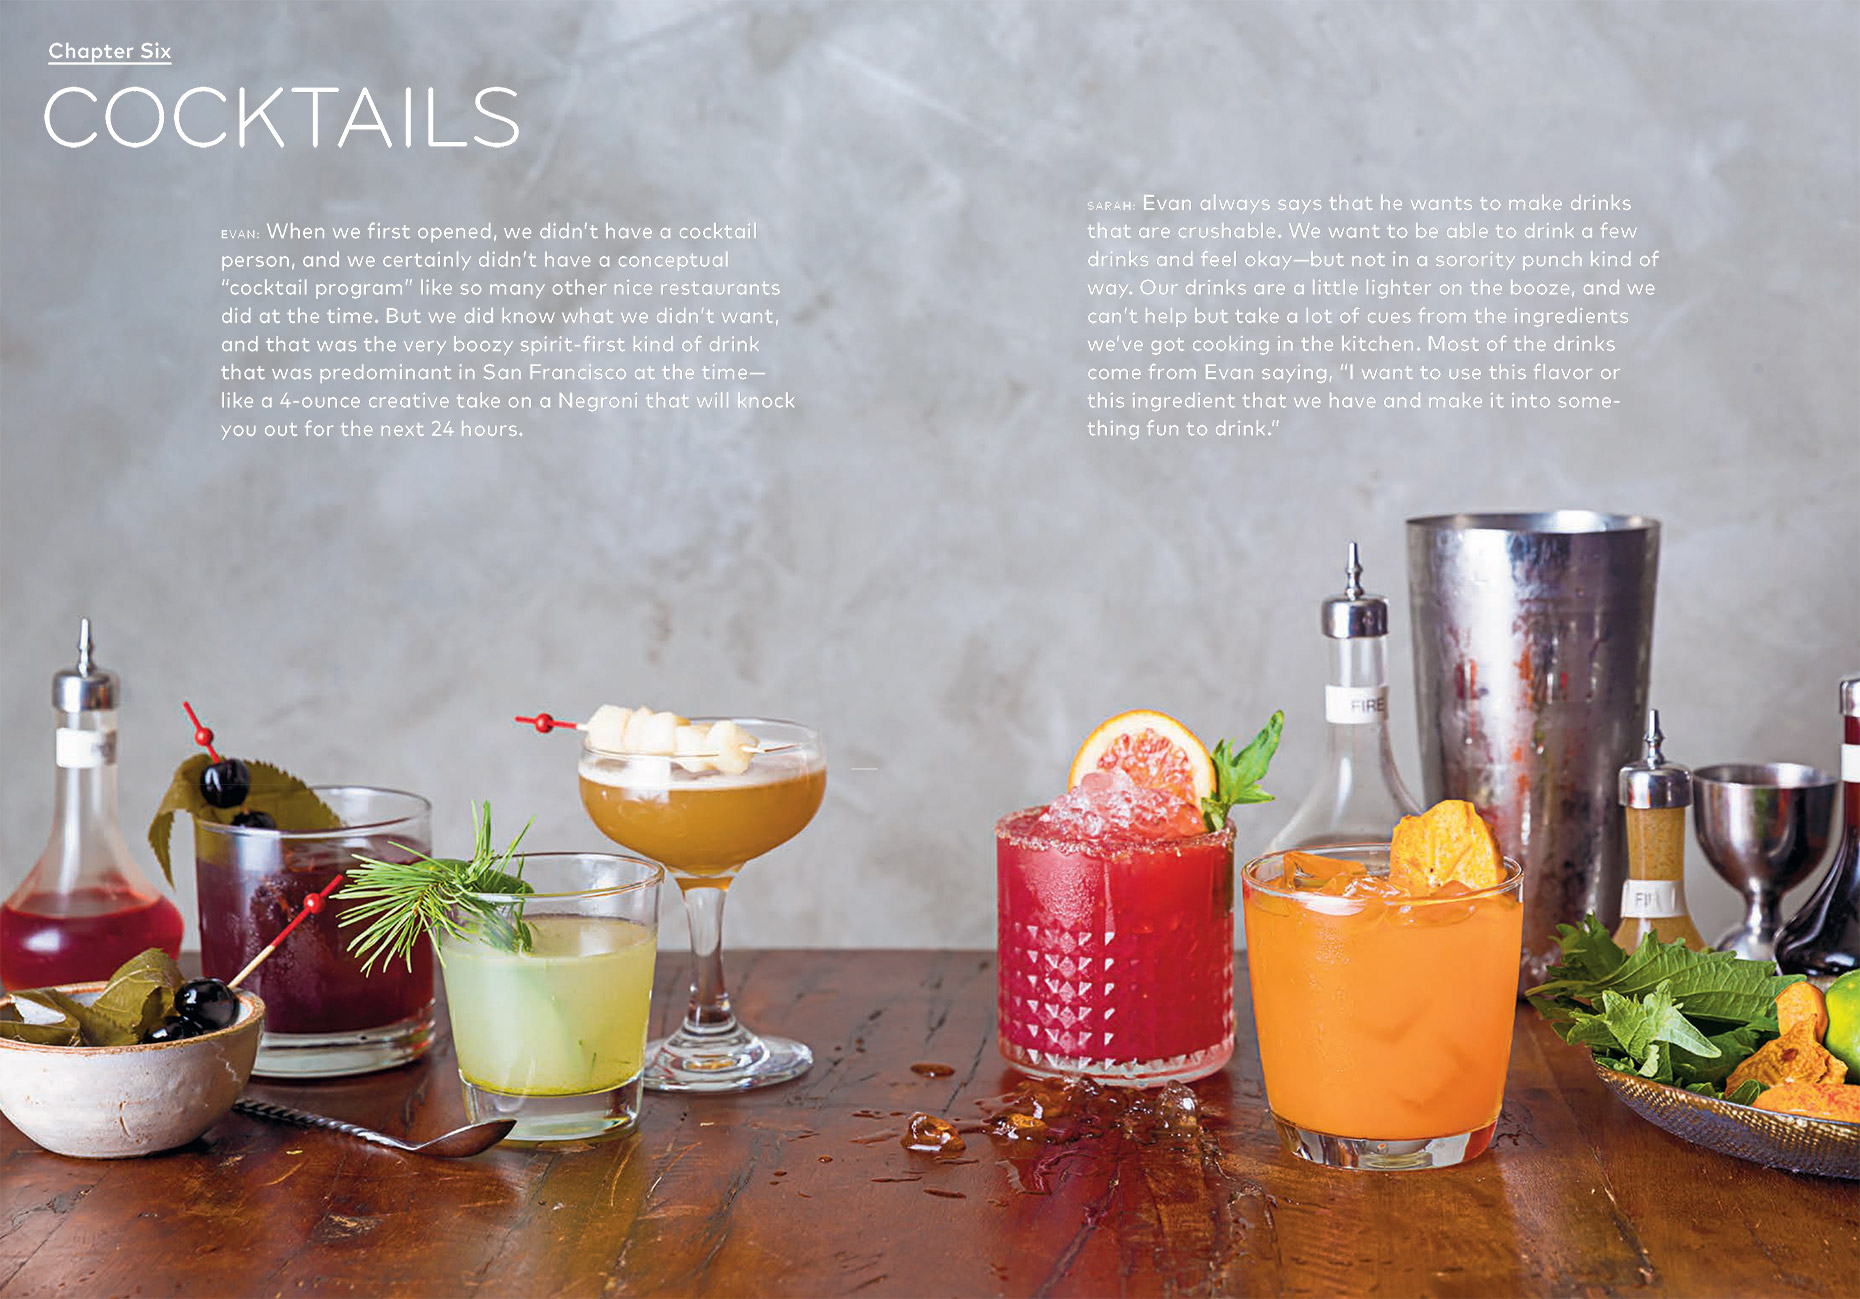 Hale_RichTableCookbook_Cocktails